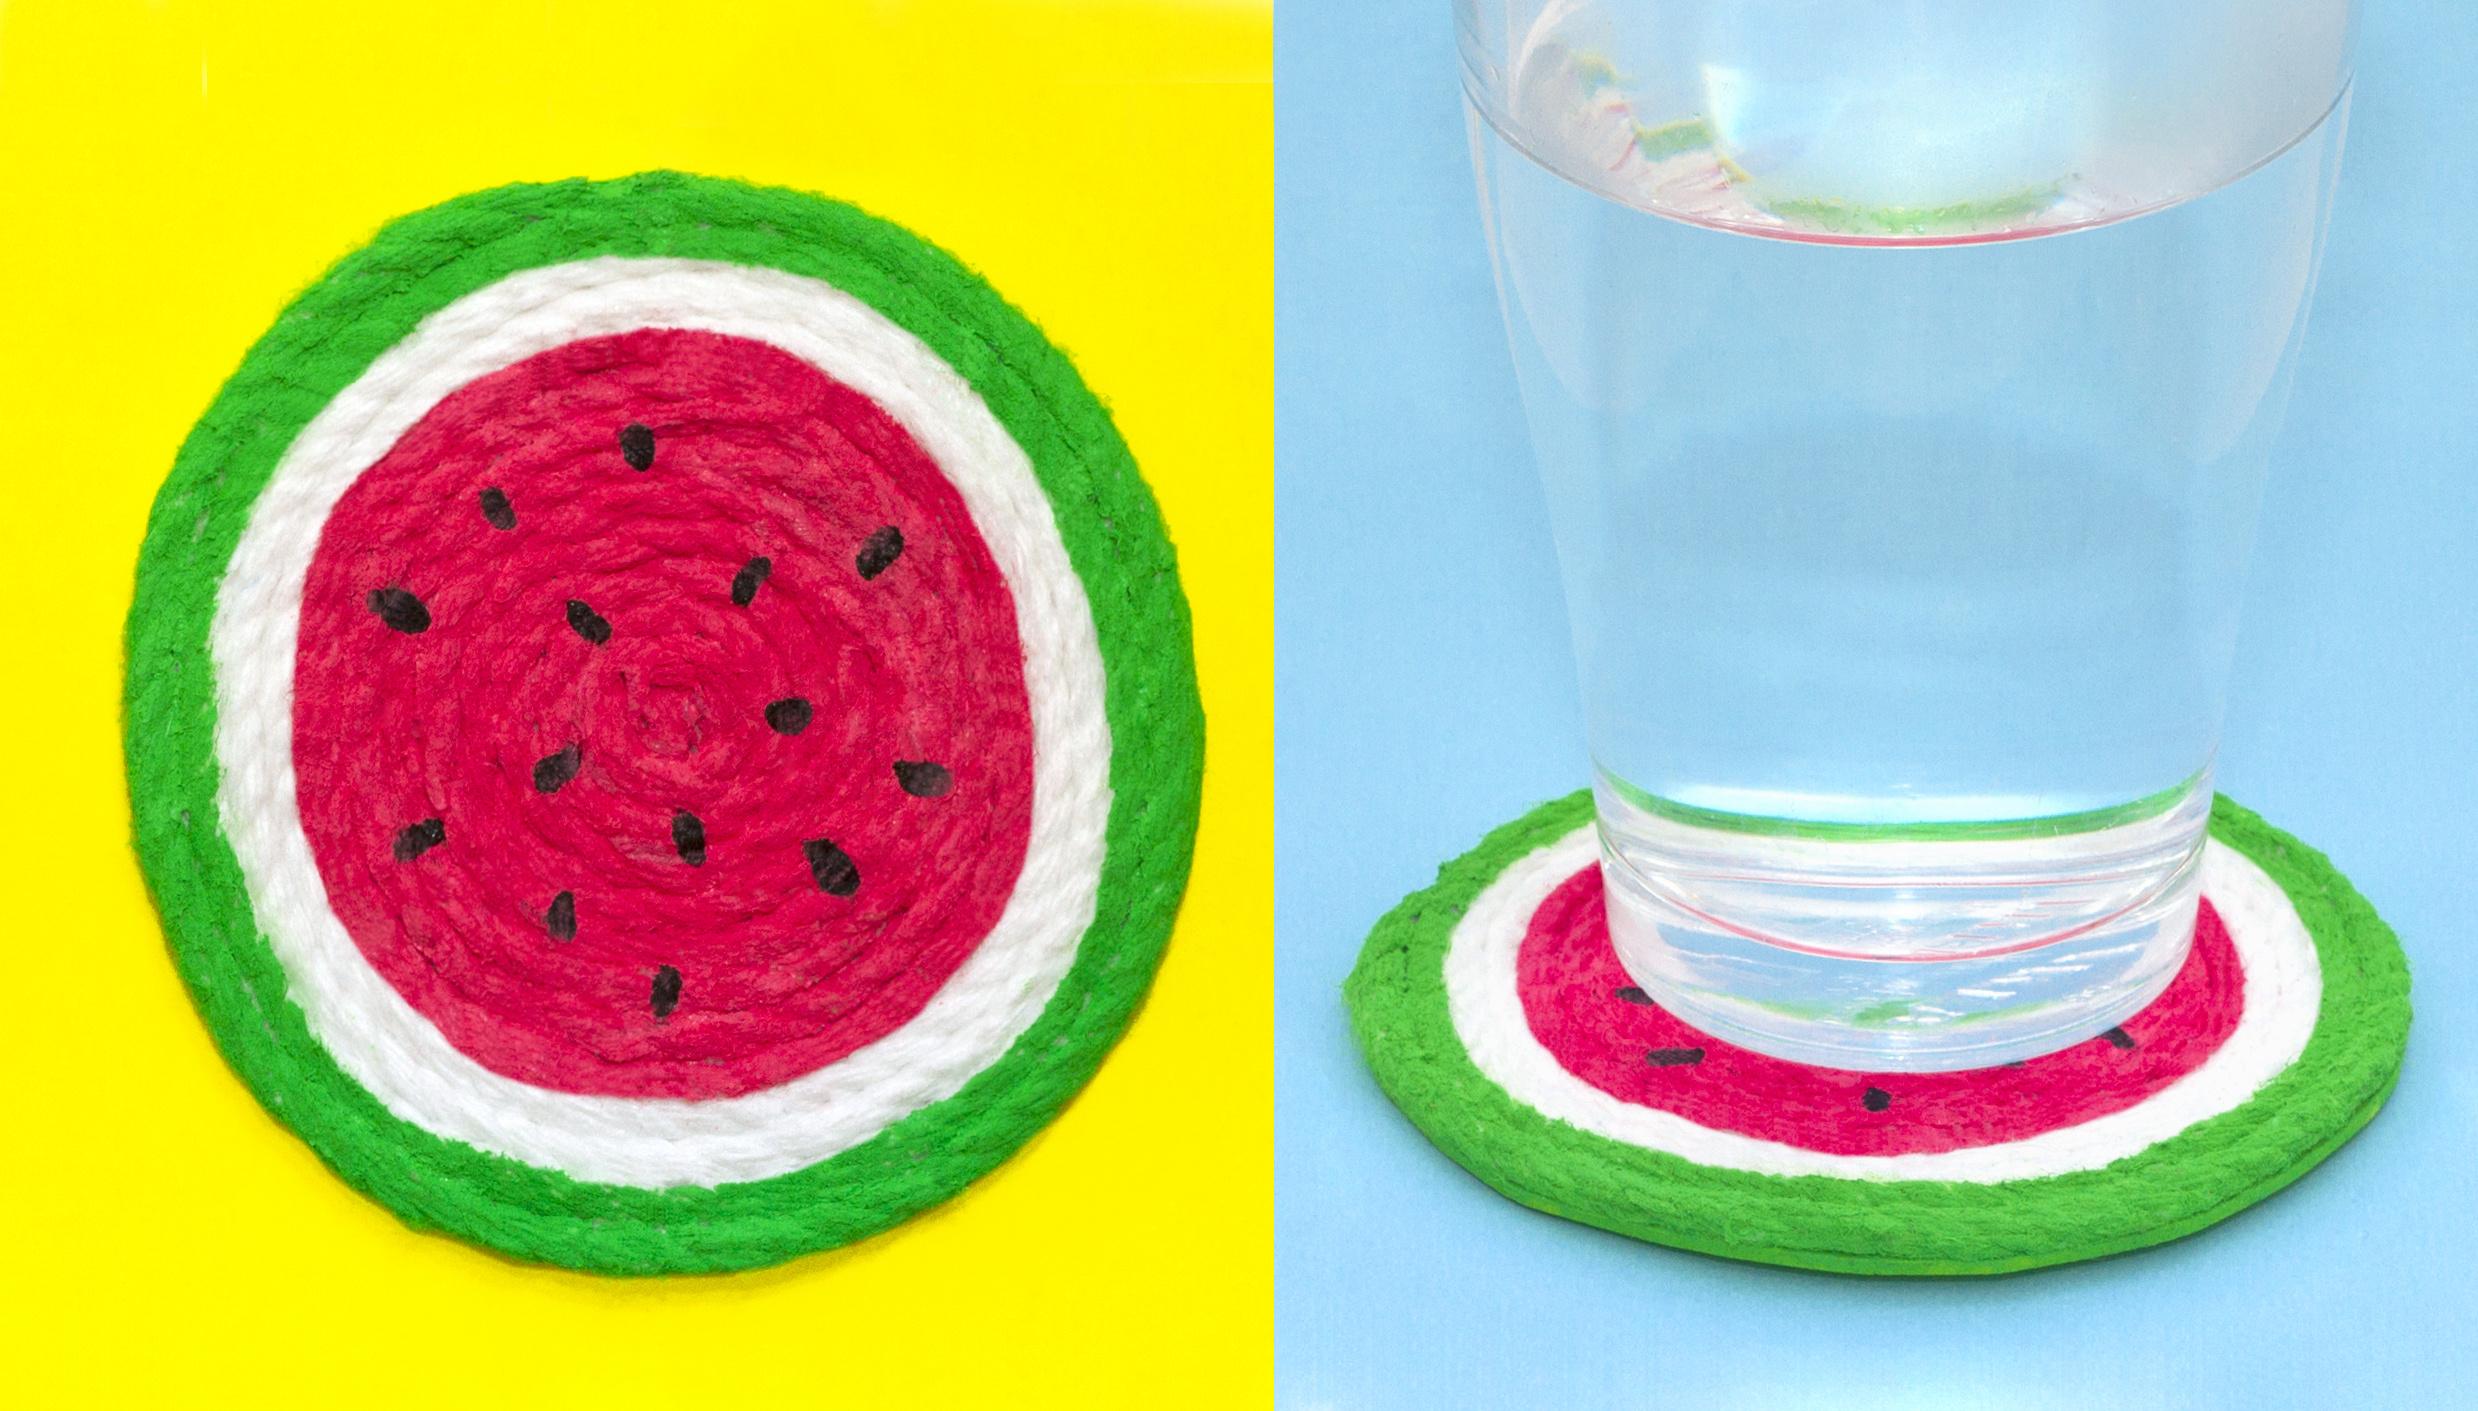 Your fruity drinks coaster is finished!  Please note: this blog post contains affiliate links, however all opinions are my own and I only link to products that I personally recommend.  Click  here  to watch a video of this coaster being made.  Subscribe to my  newsletter to receive fun craft ideas weekly!